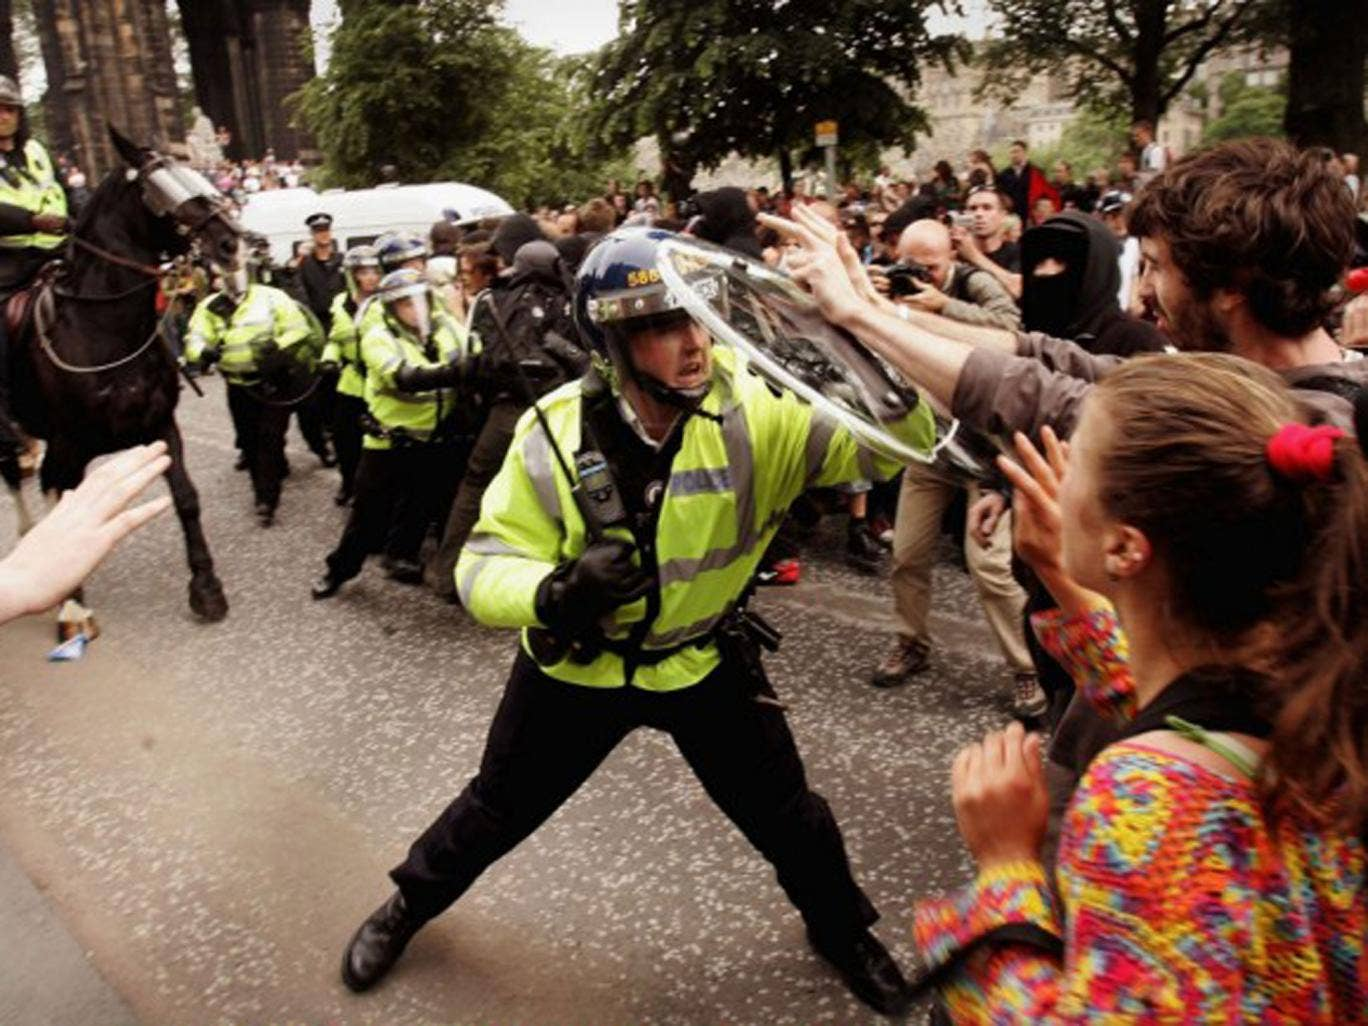 Police clash with protesters in Edinburgh on 4 July 2005 ahead of the Gleneagles summit